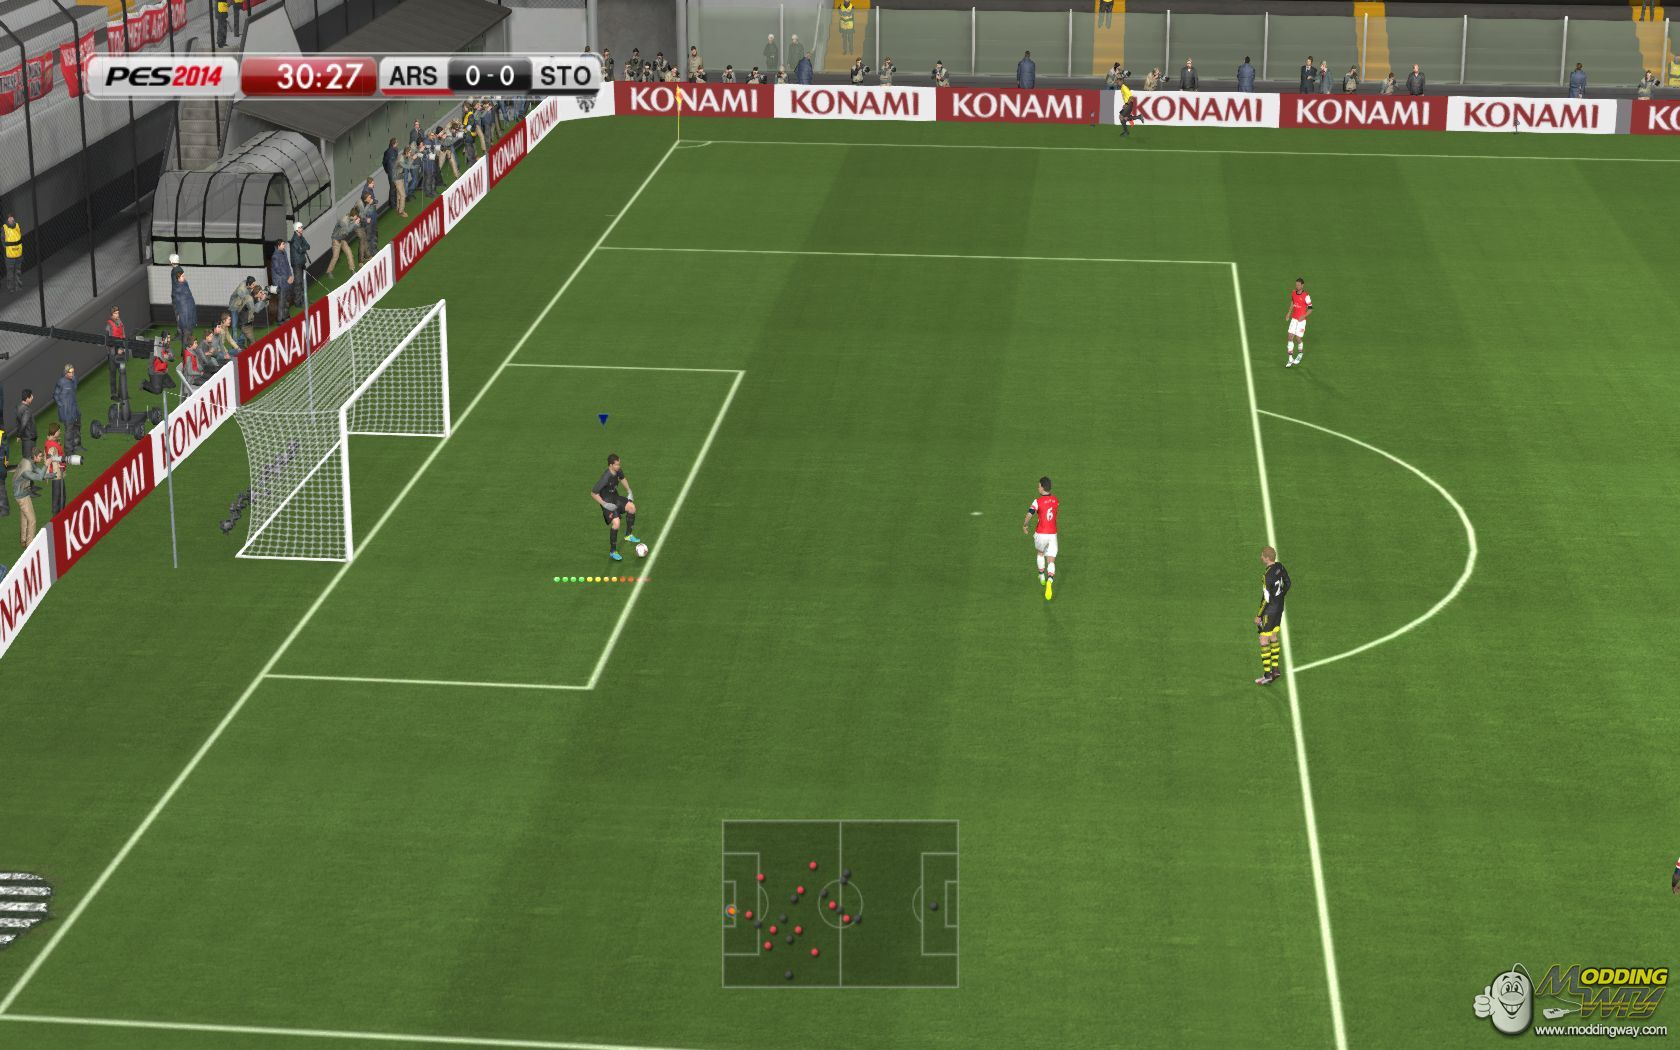 Pes 2010 latest patch 2014